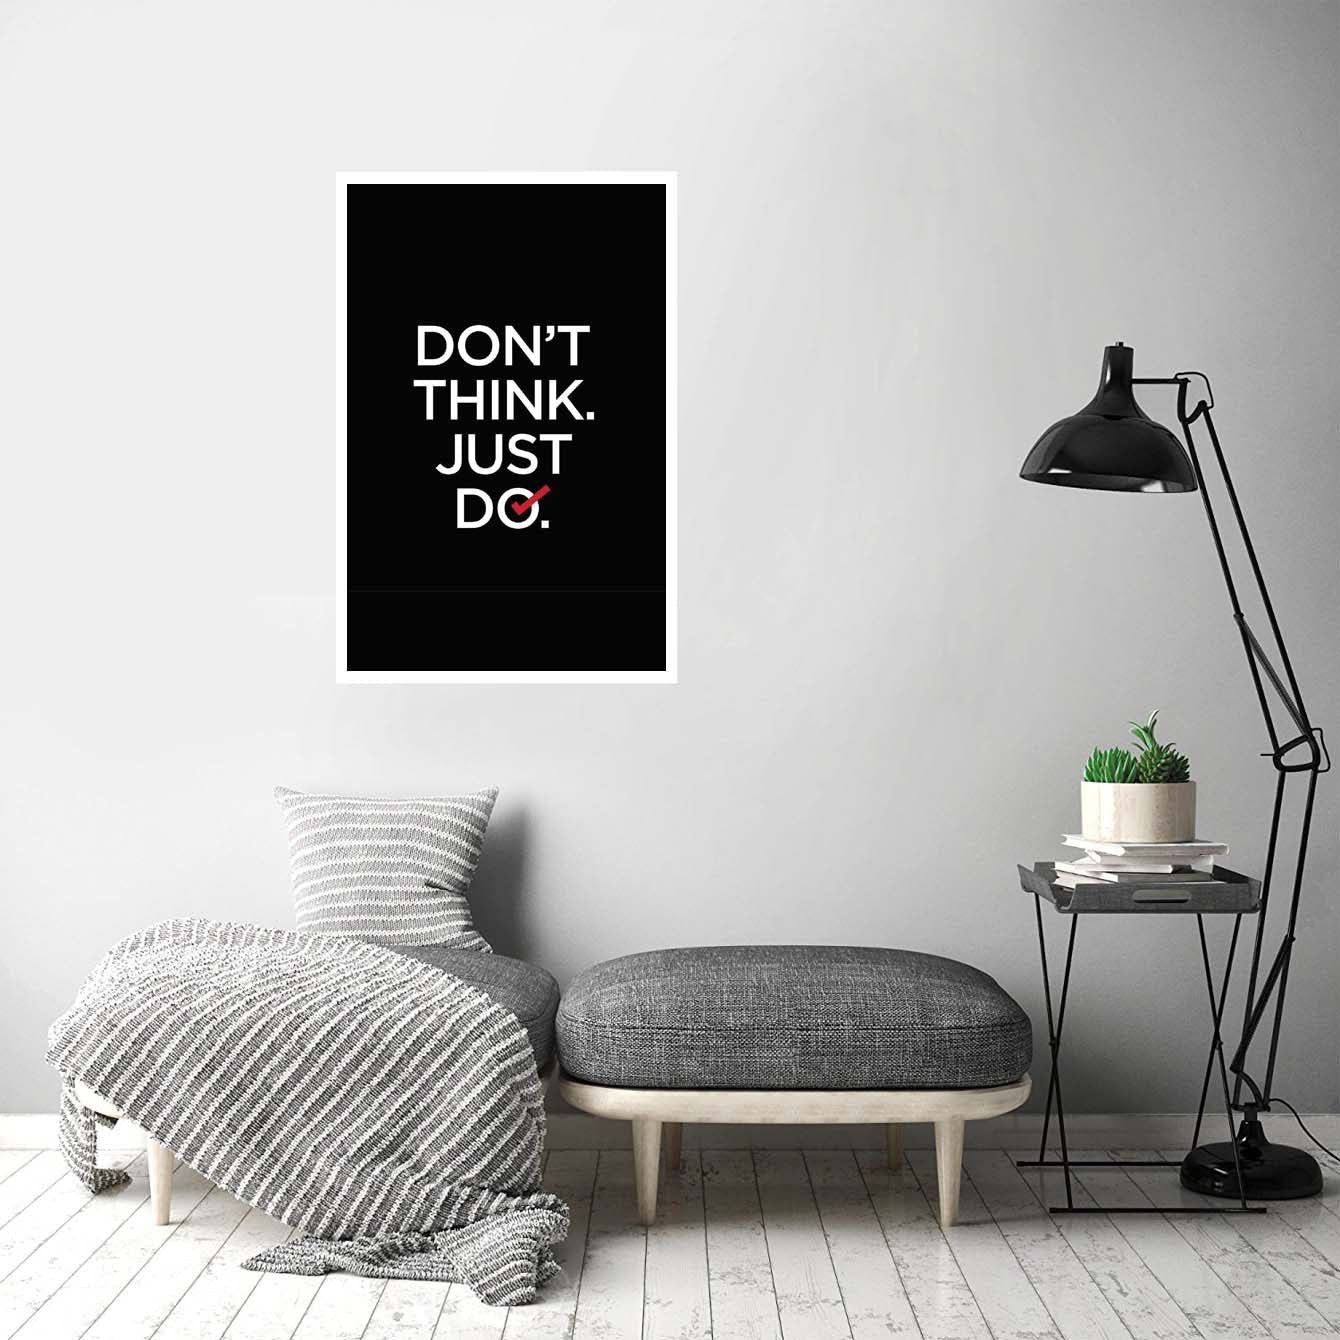 Just Do Motivational Posters